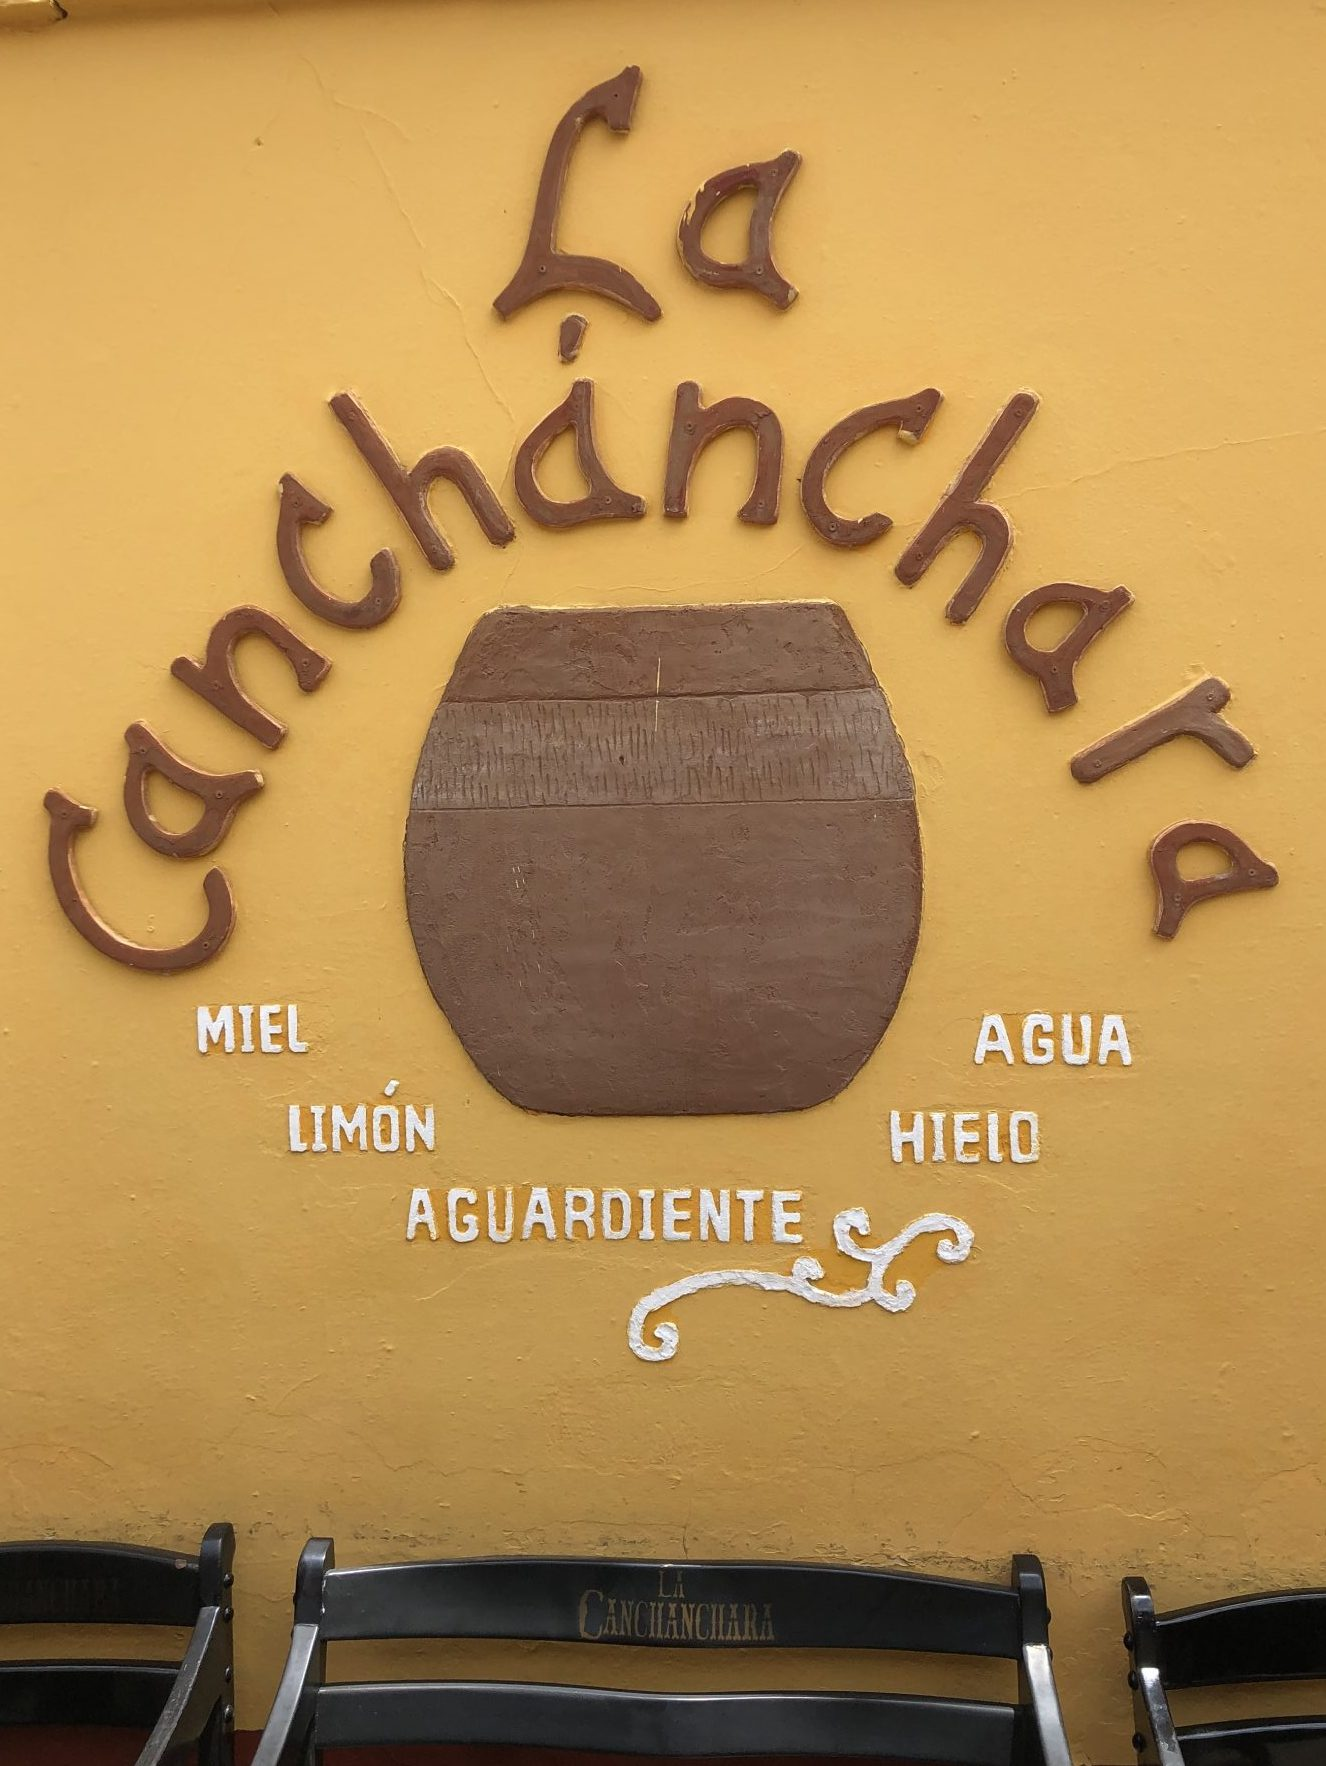 La Canchánchara, Recipe